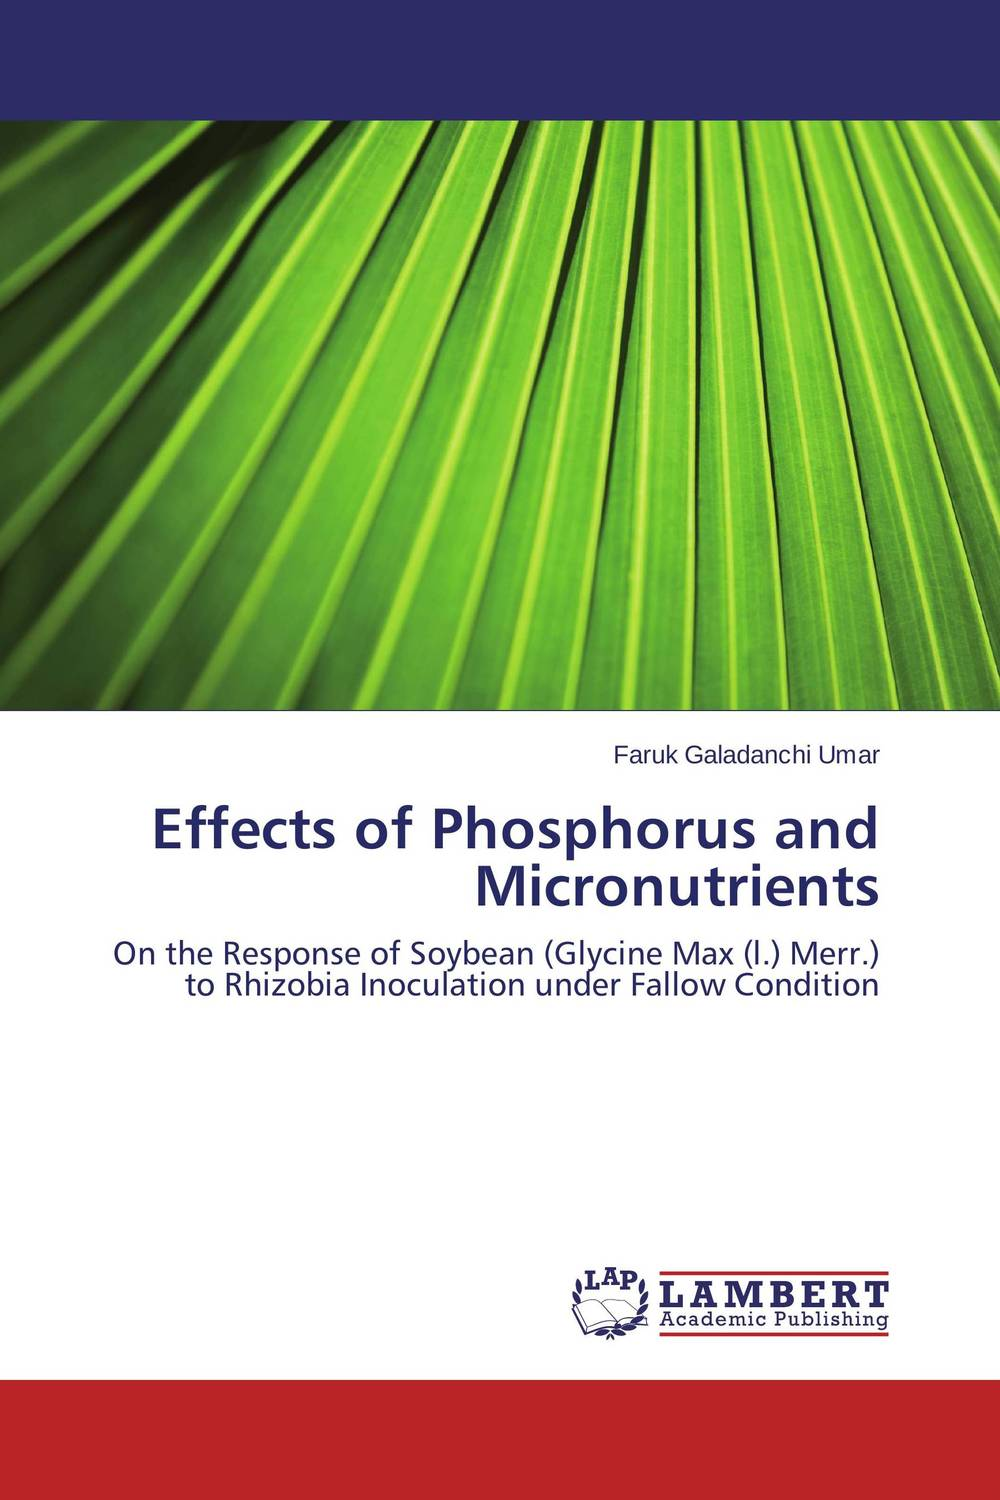 Effects of Phosphorus and Micronutrients ravindra kumar jain nod factors and nodulation process by rhizobia in cicer arietinum